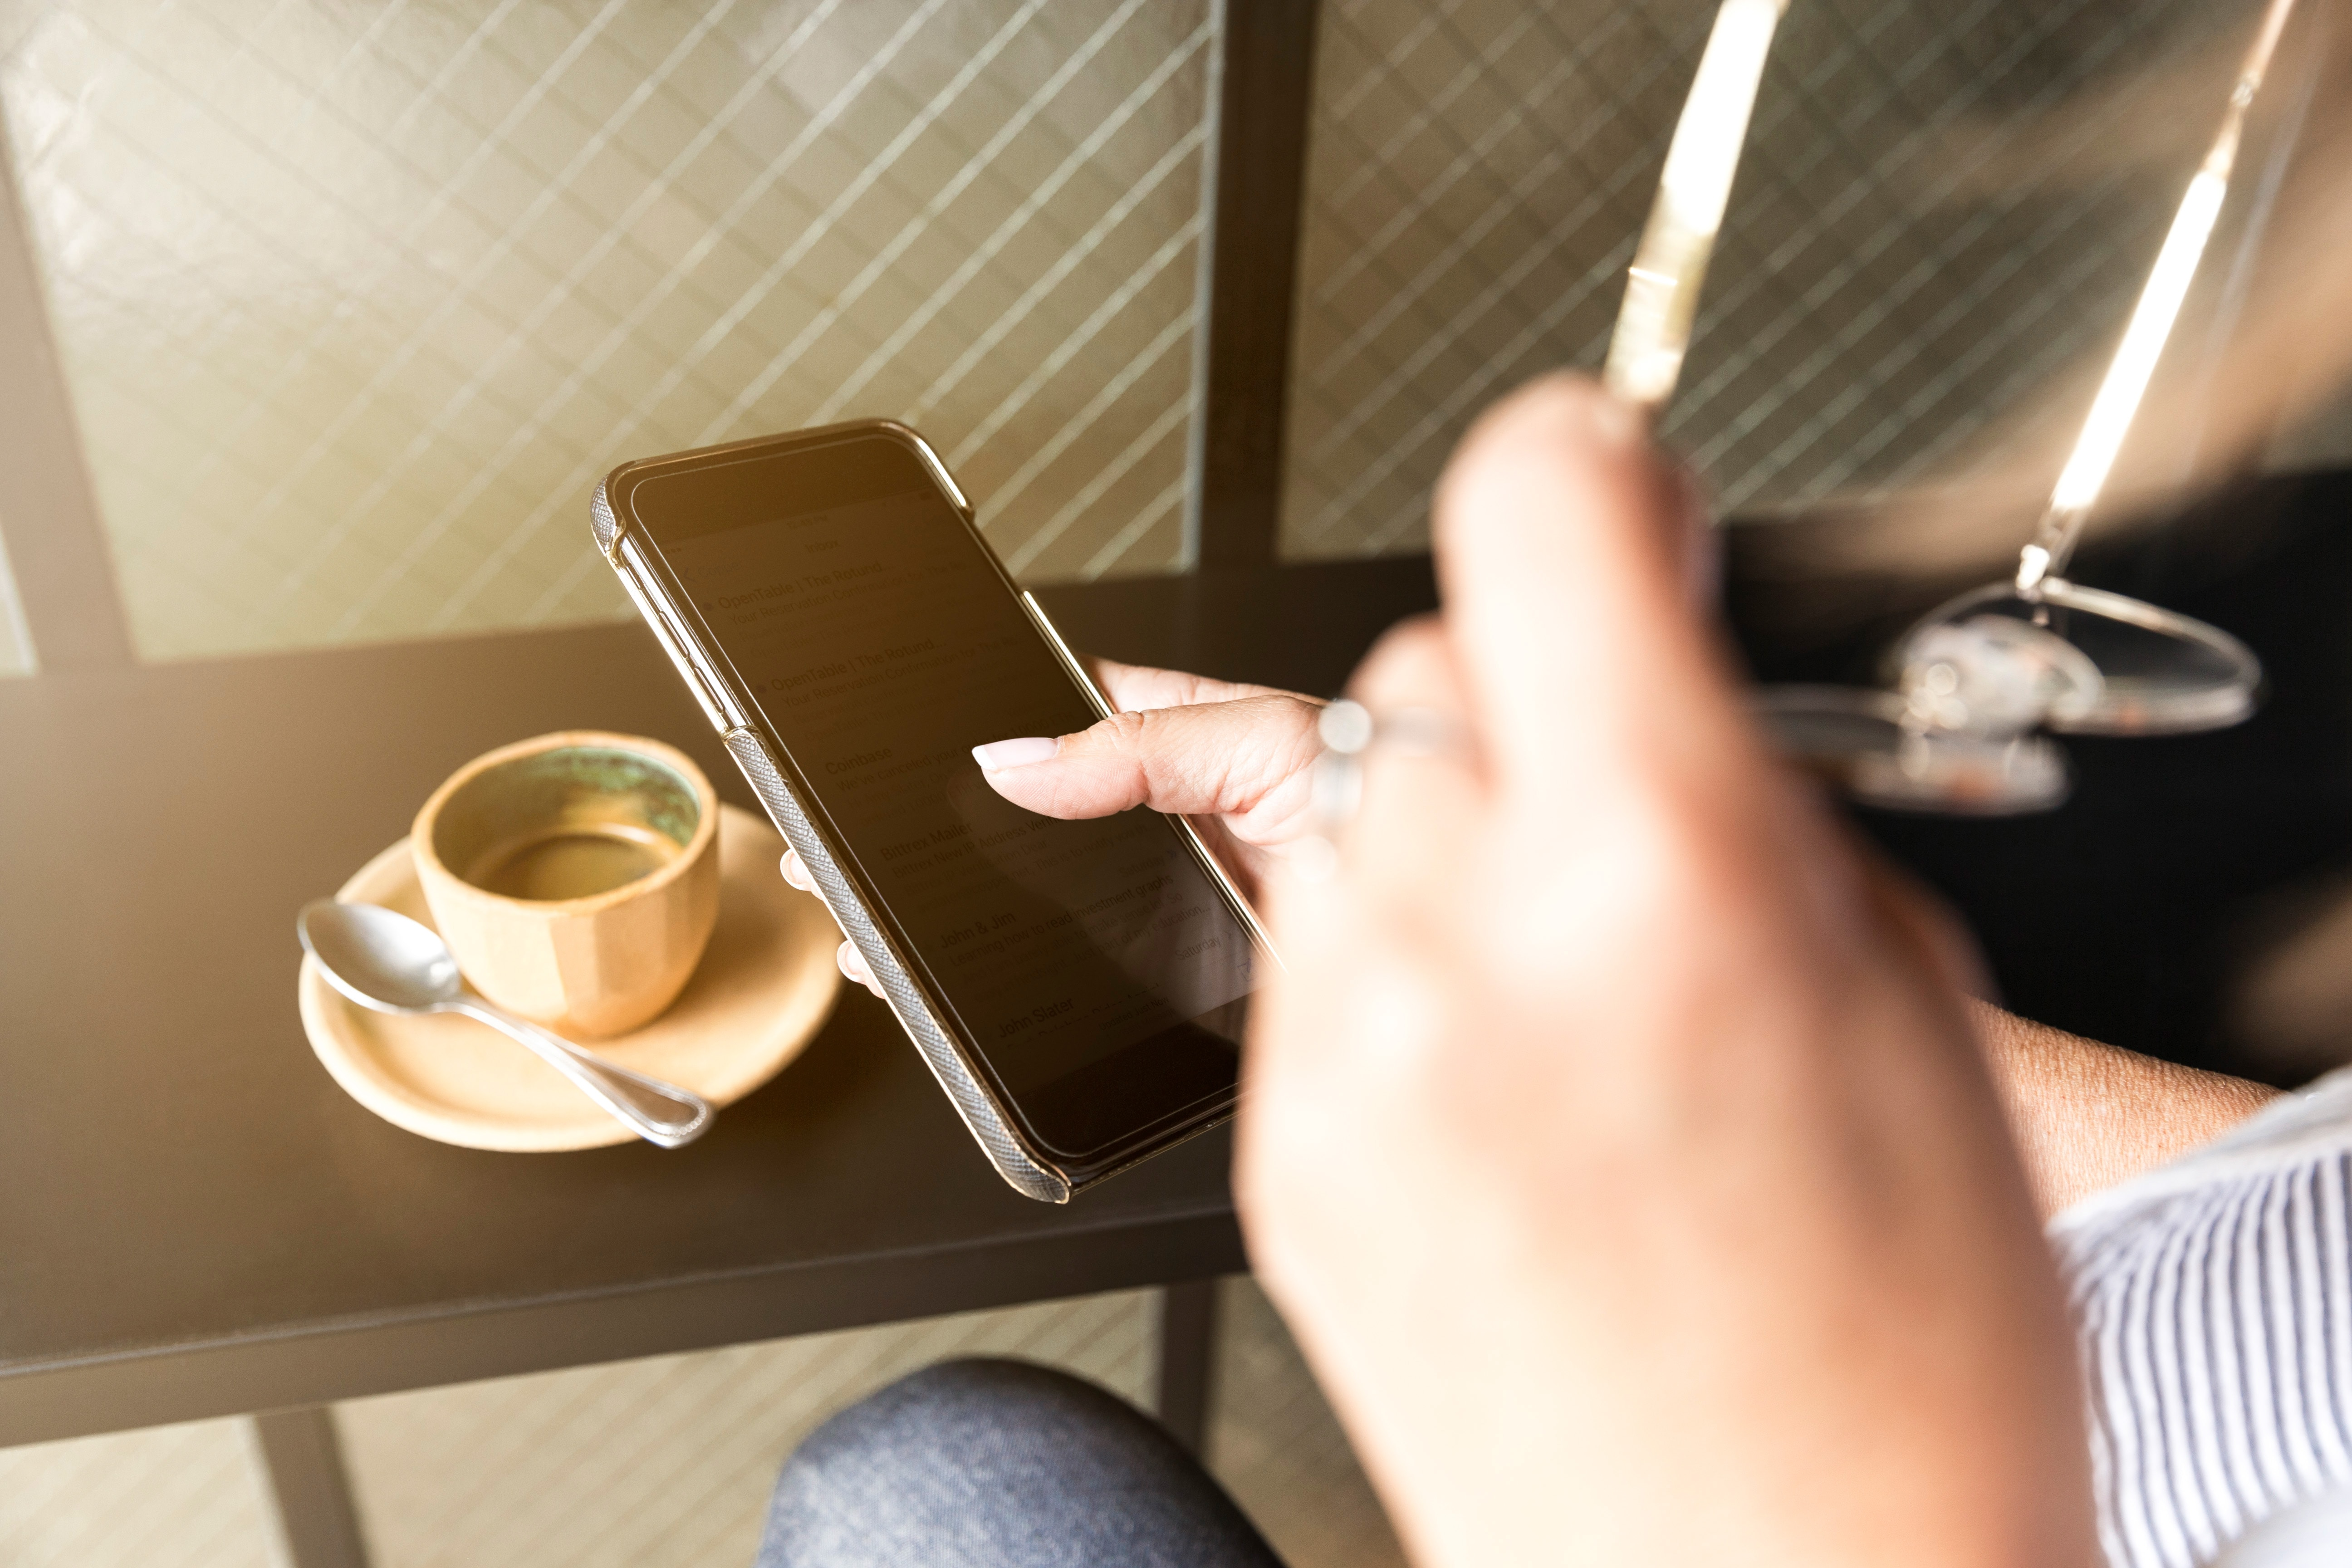 Woman photographing coffee with smartphone